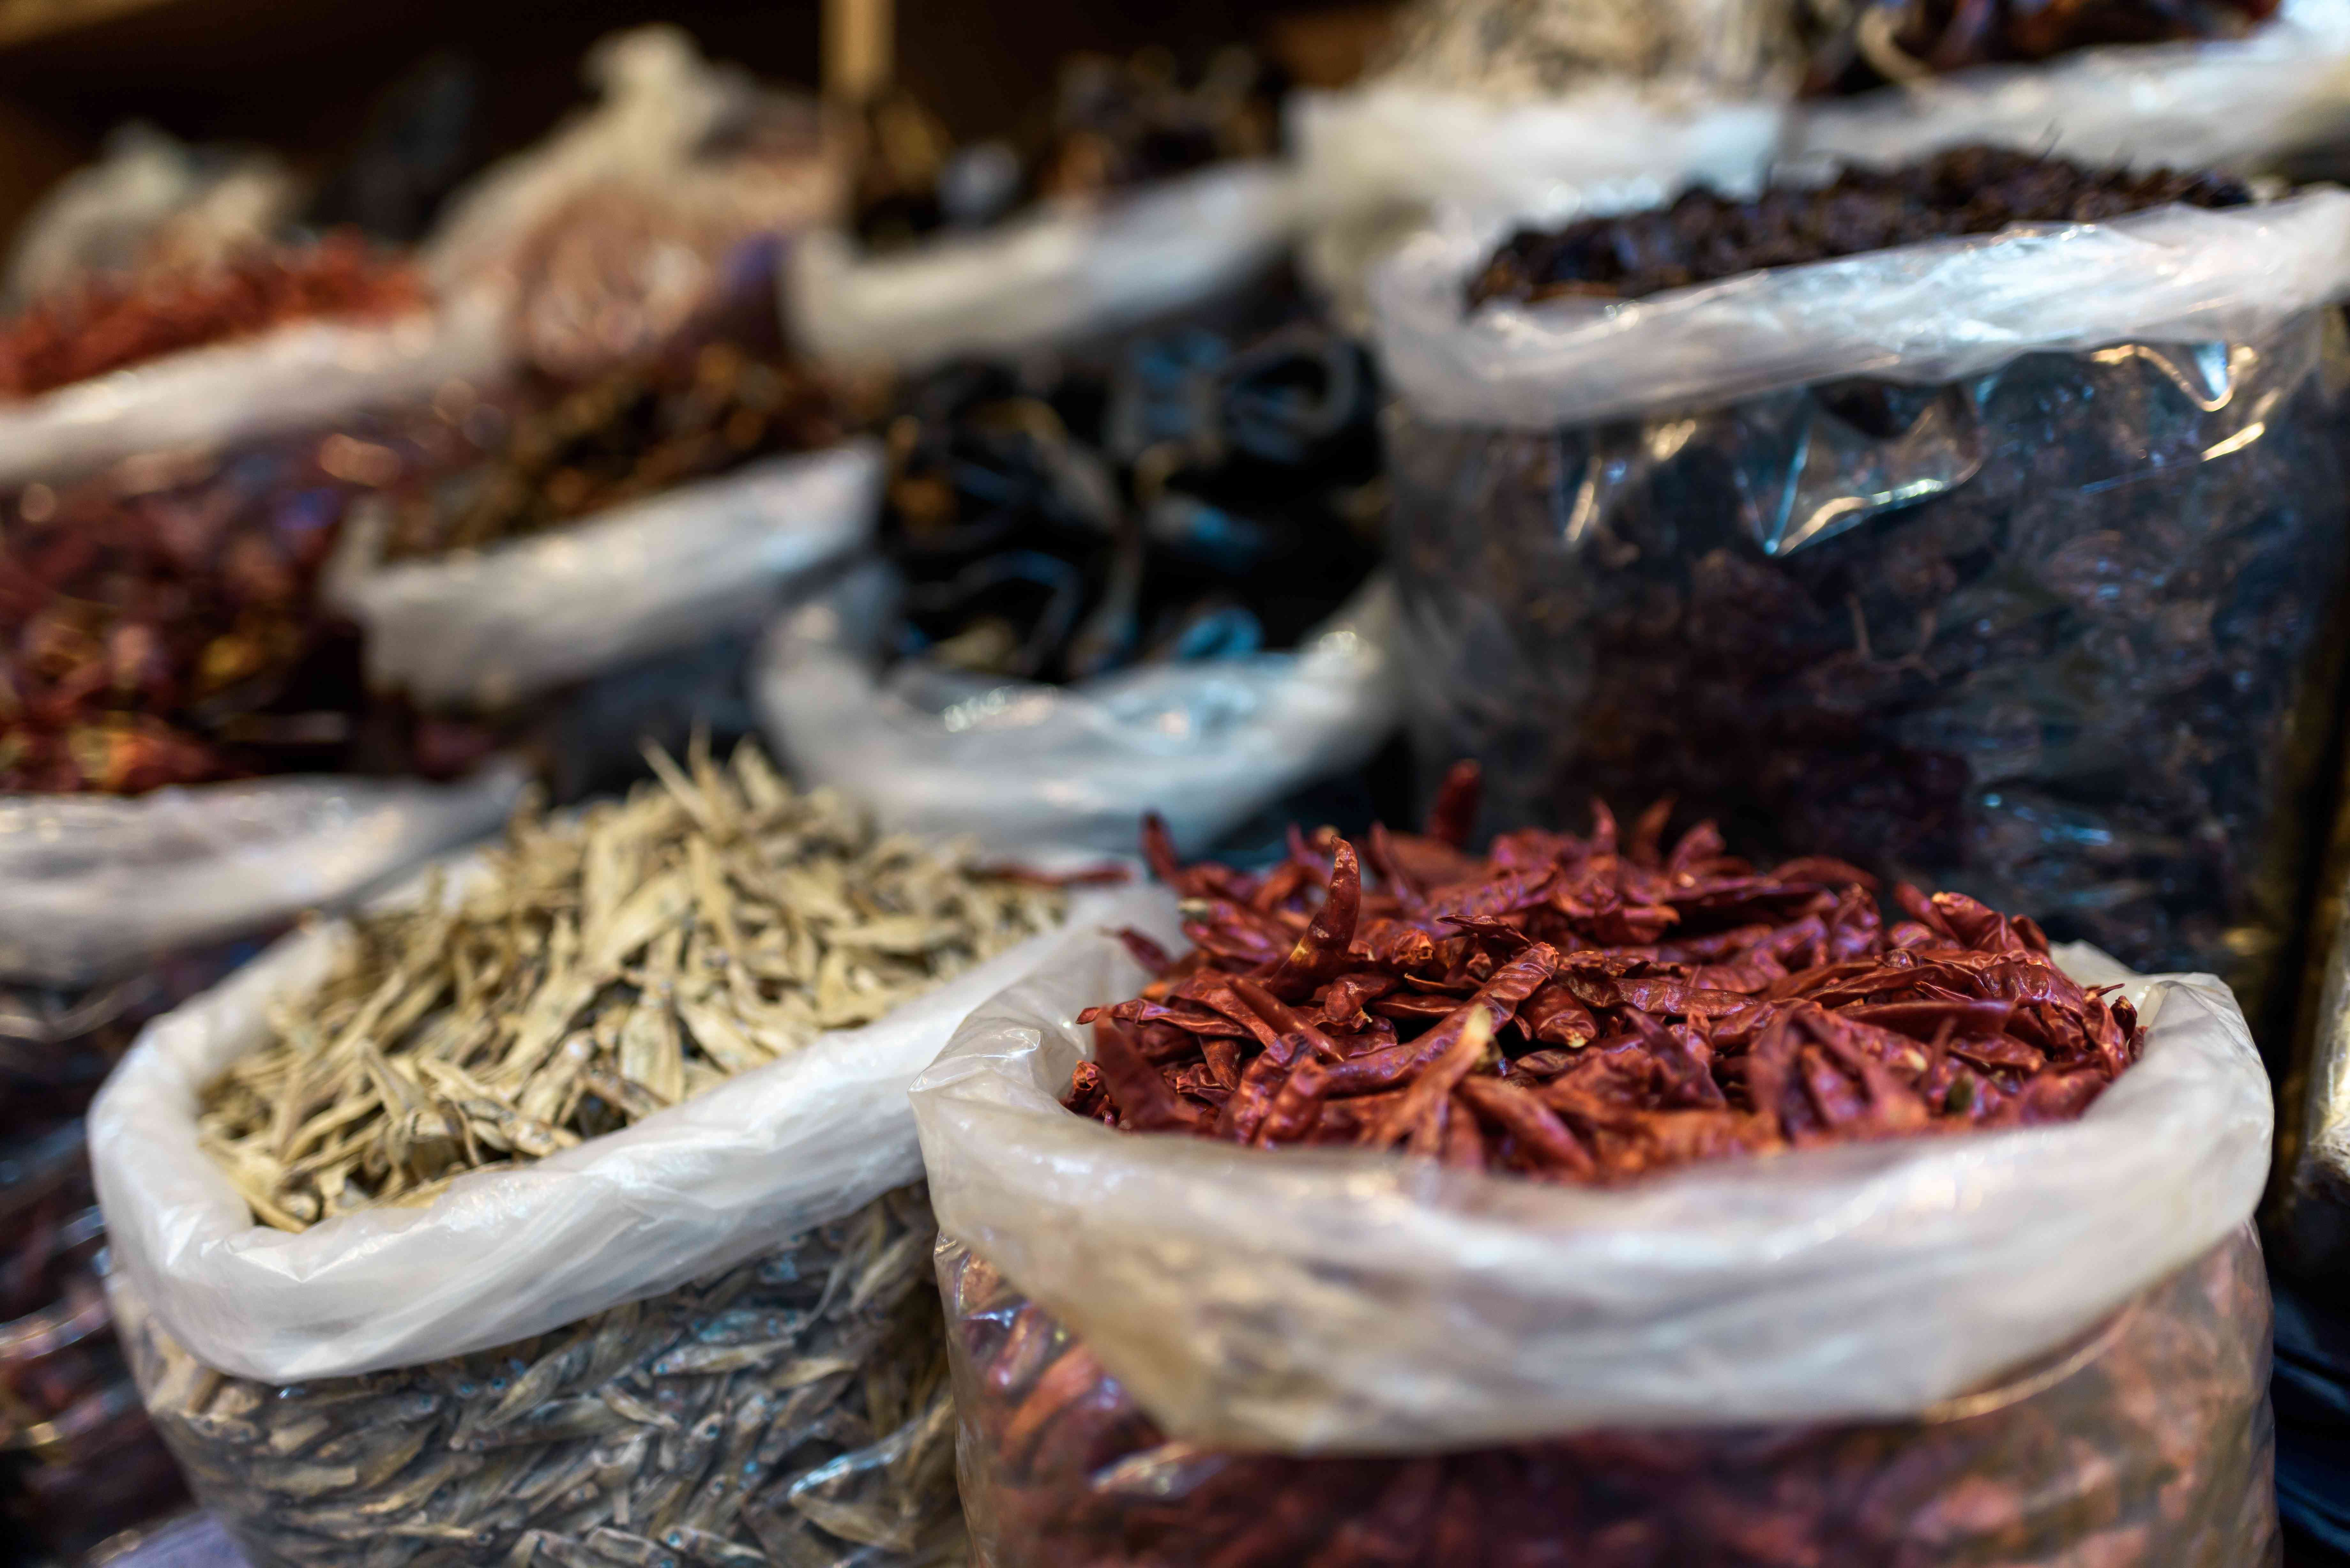 Bags of spices for sale